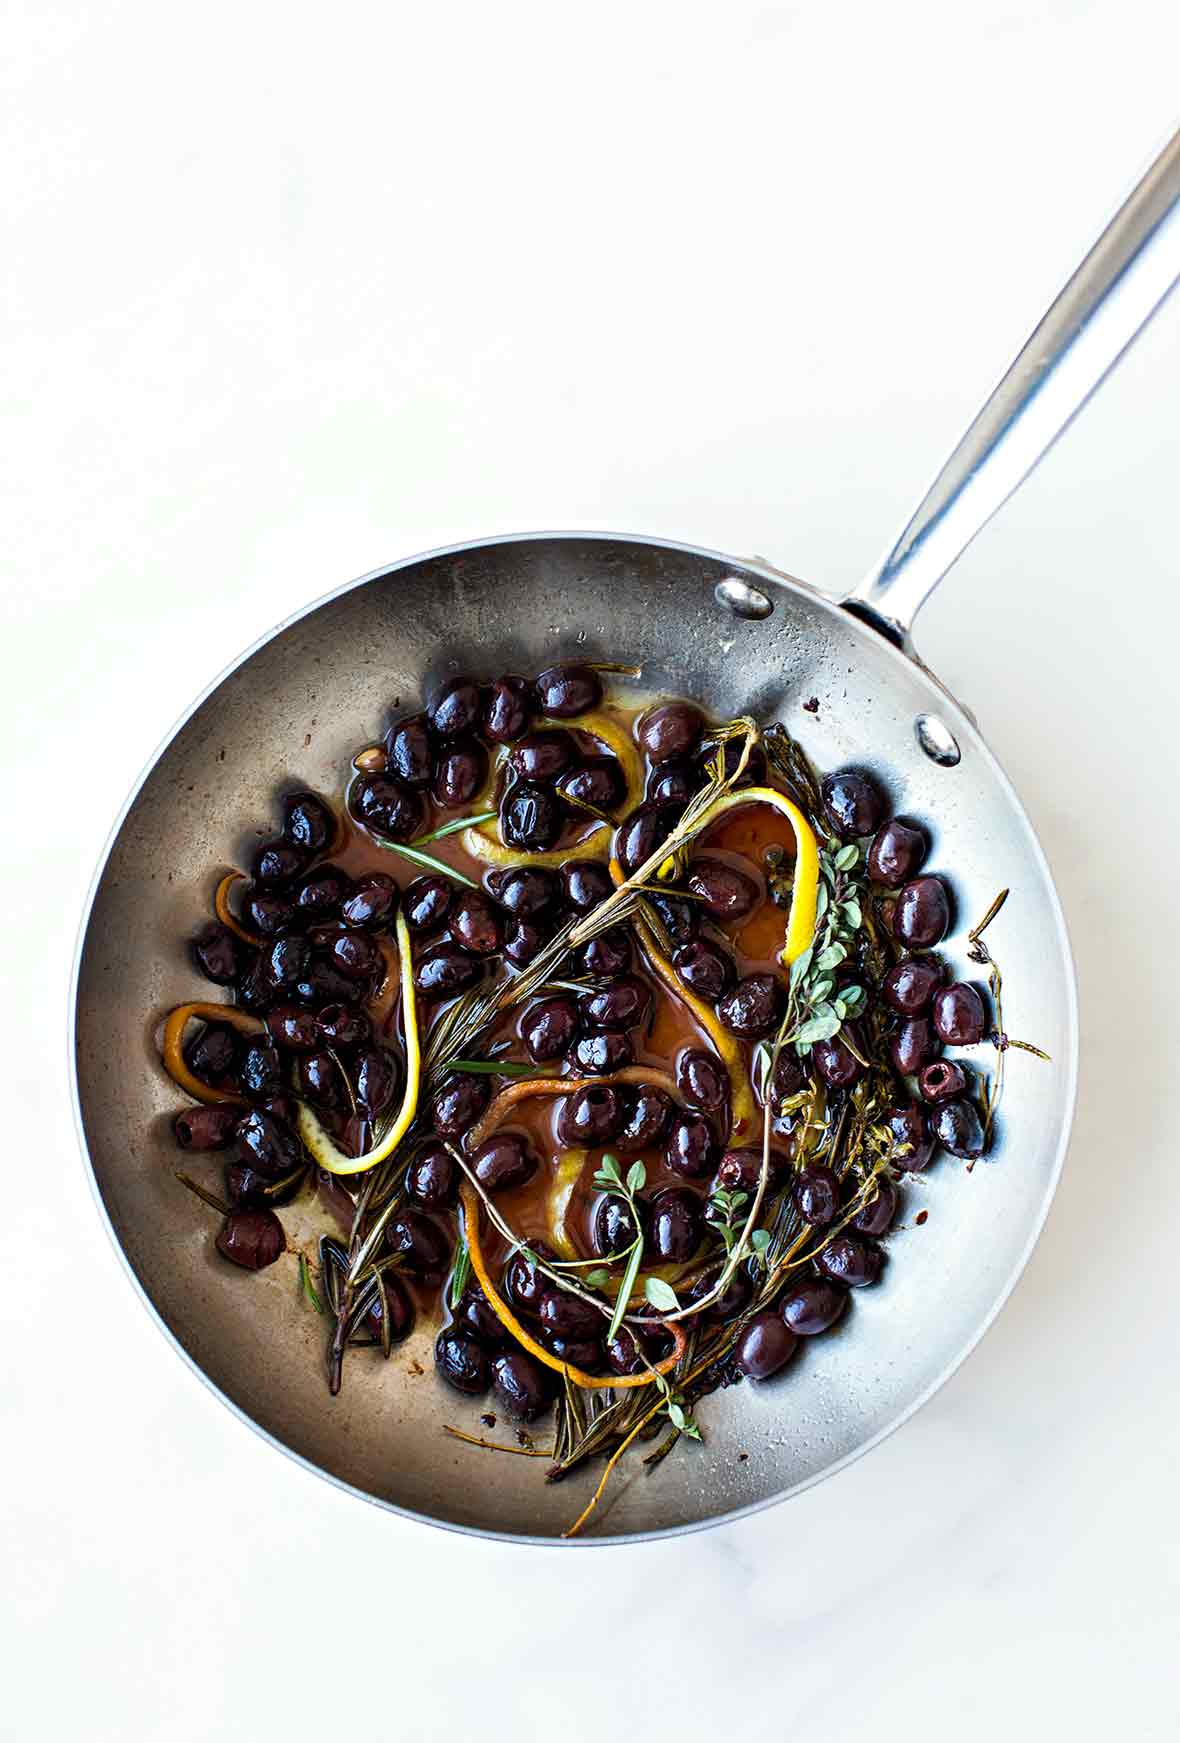 A skillet filled with black olives in an infusion of herbs and lemon and orange peel